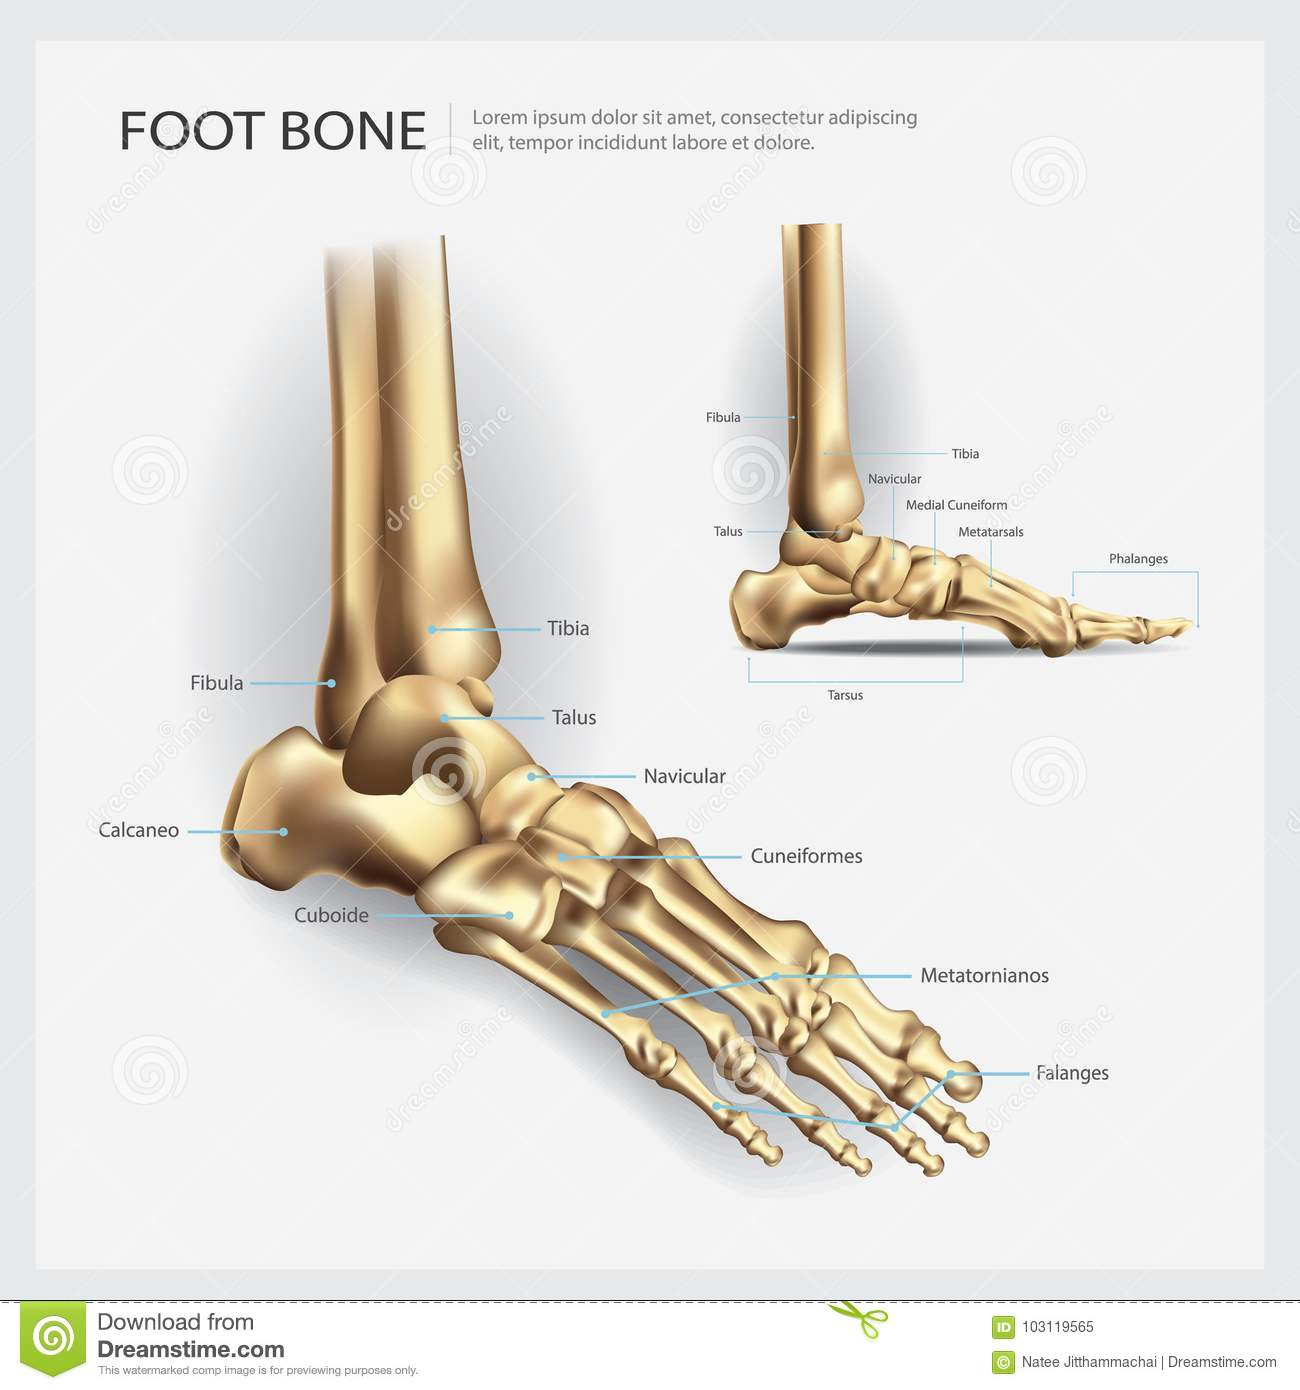 Anatomy Of Foot Bone Royalty-Free Stock Image | CartoonDealer.com ...